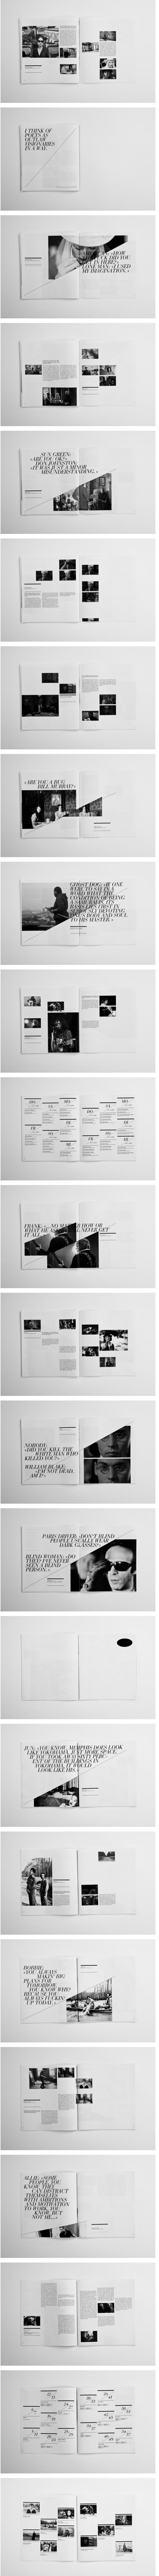 layout / Editorial Design / Diseño Editorial